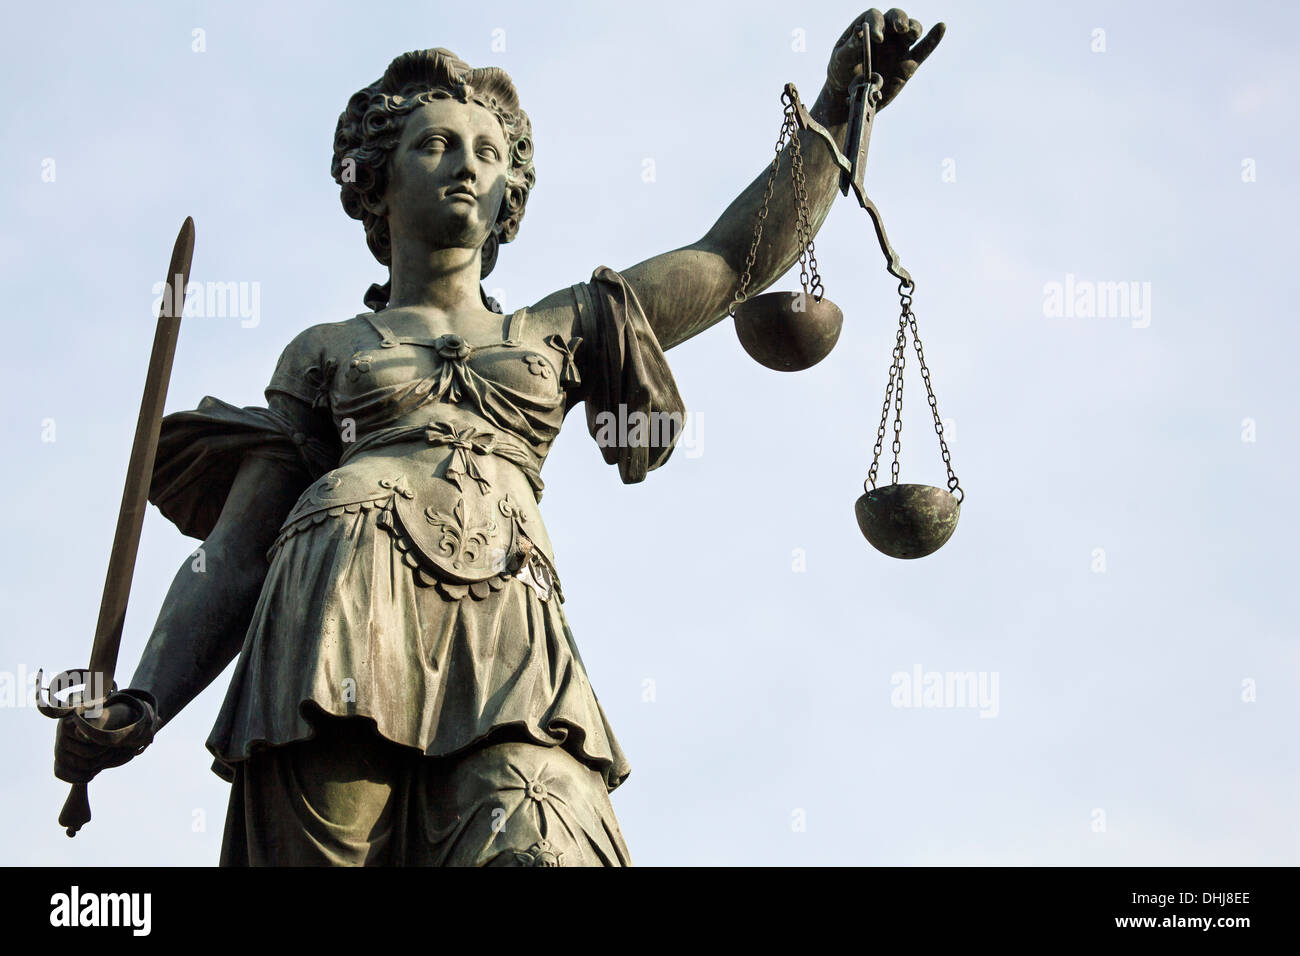 Sculpture of Lady Justice, Justitia on the Römerplatz in Frankrfurt am Main, Germany - Stock Image